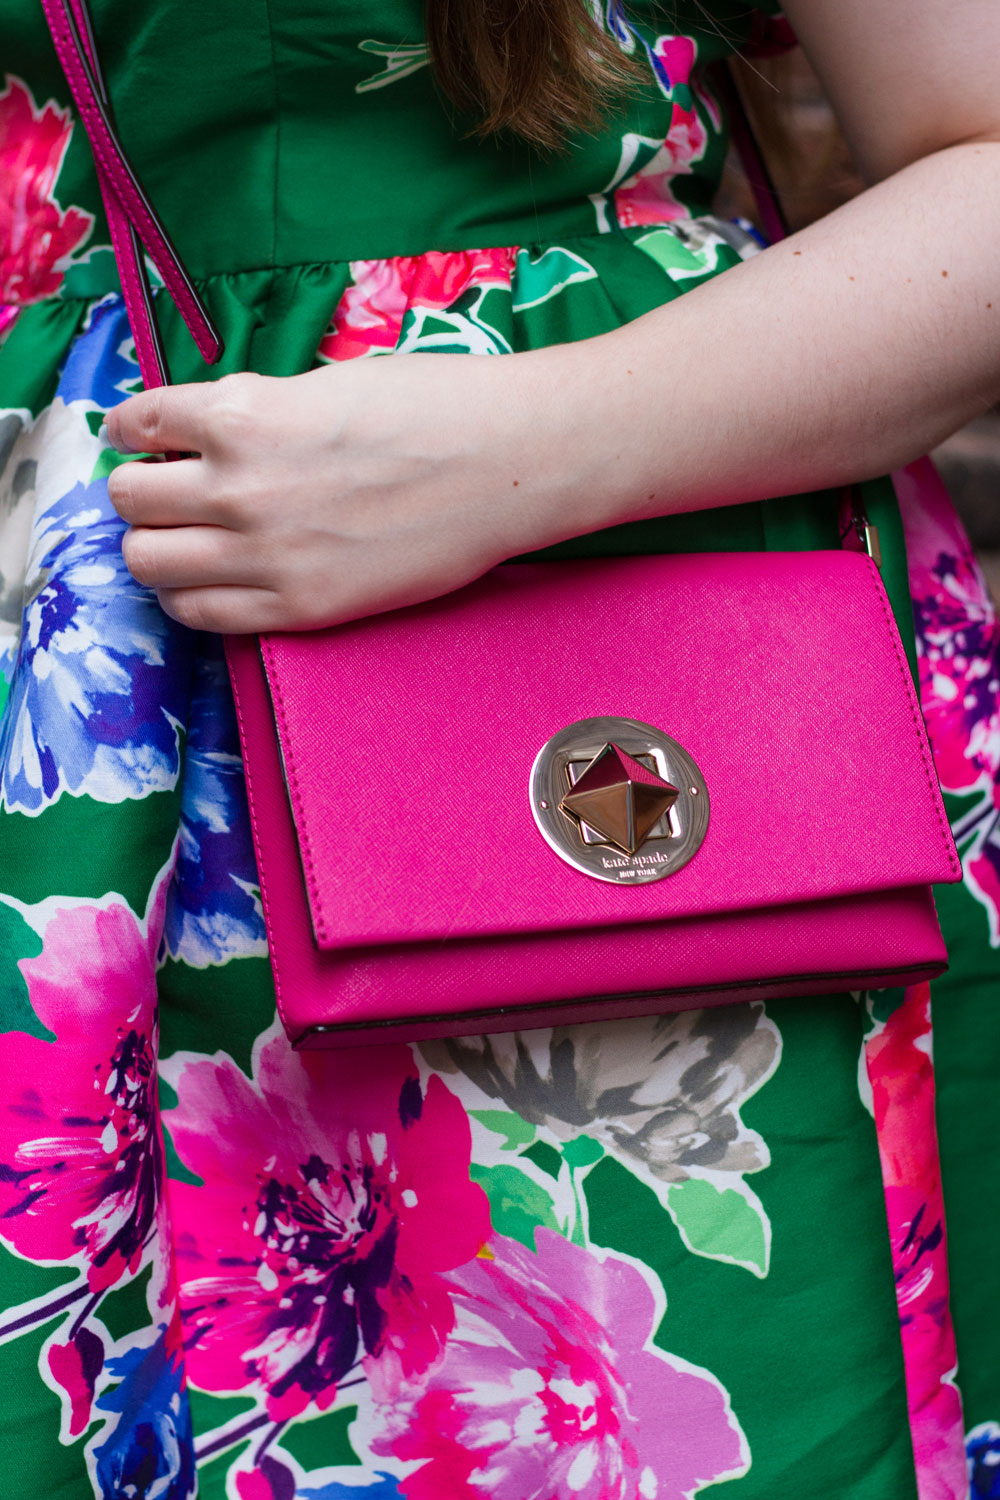 Kate Spade Newbury Lane Sally Bag in Pink // Shopping Tips for Scoring a Deal at the Outlet Mall // Hello Rigby Seattle Fashion & Style Blog